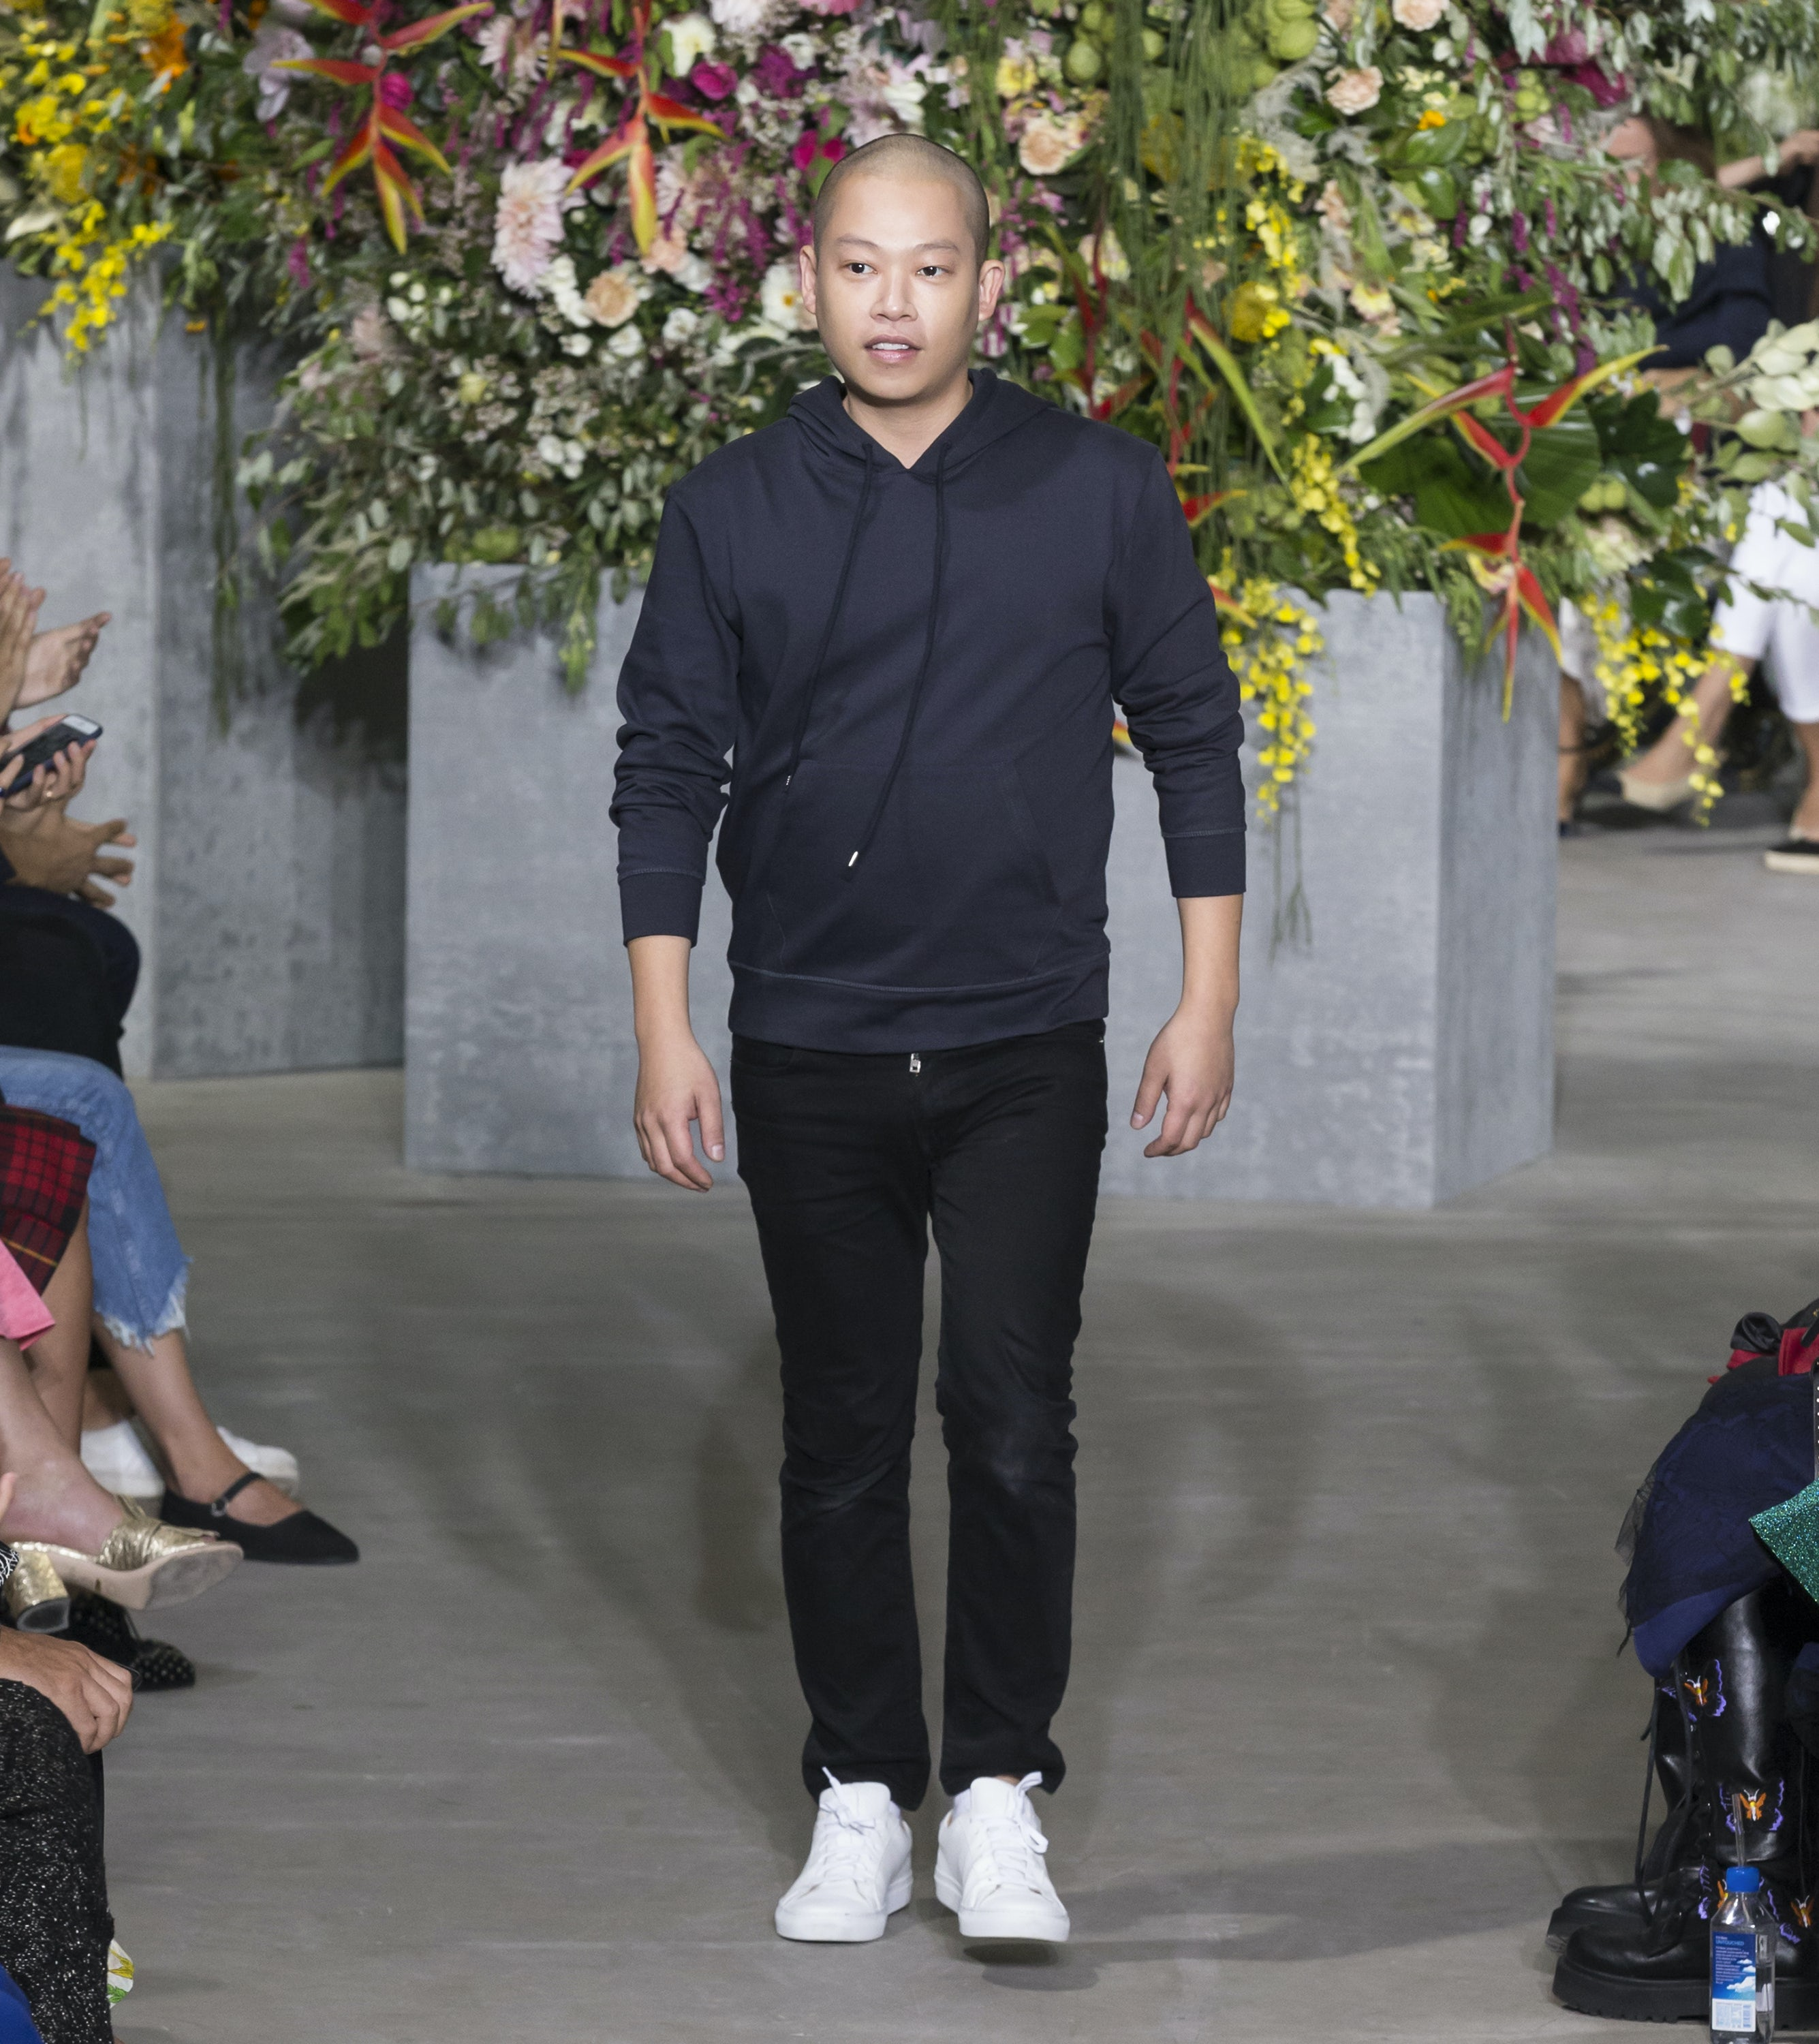 Jason Wu | Source: Shutterstock